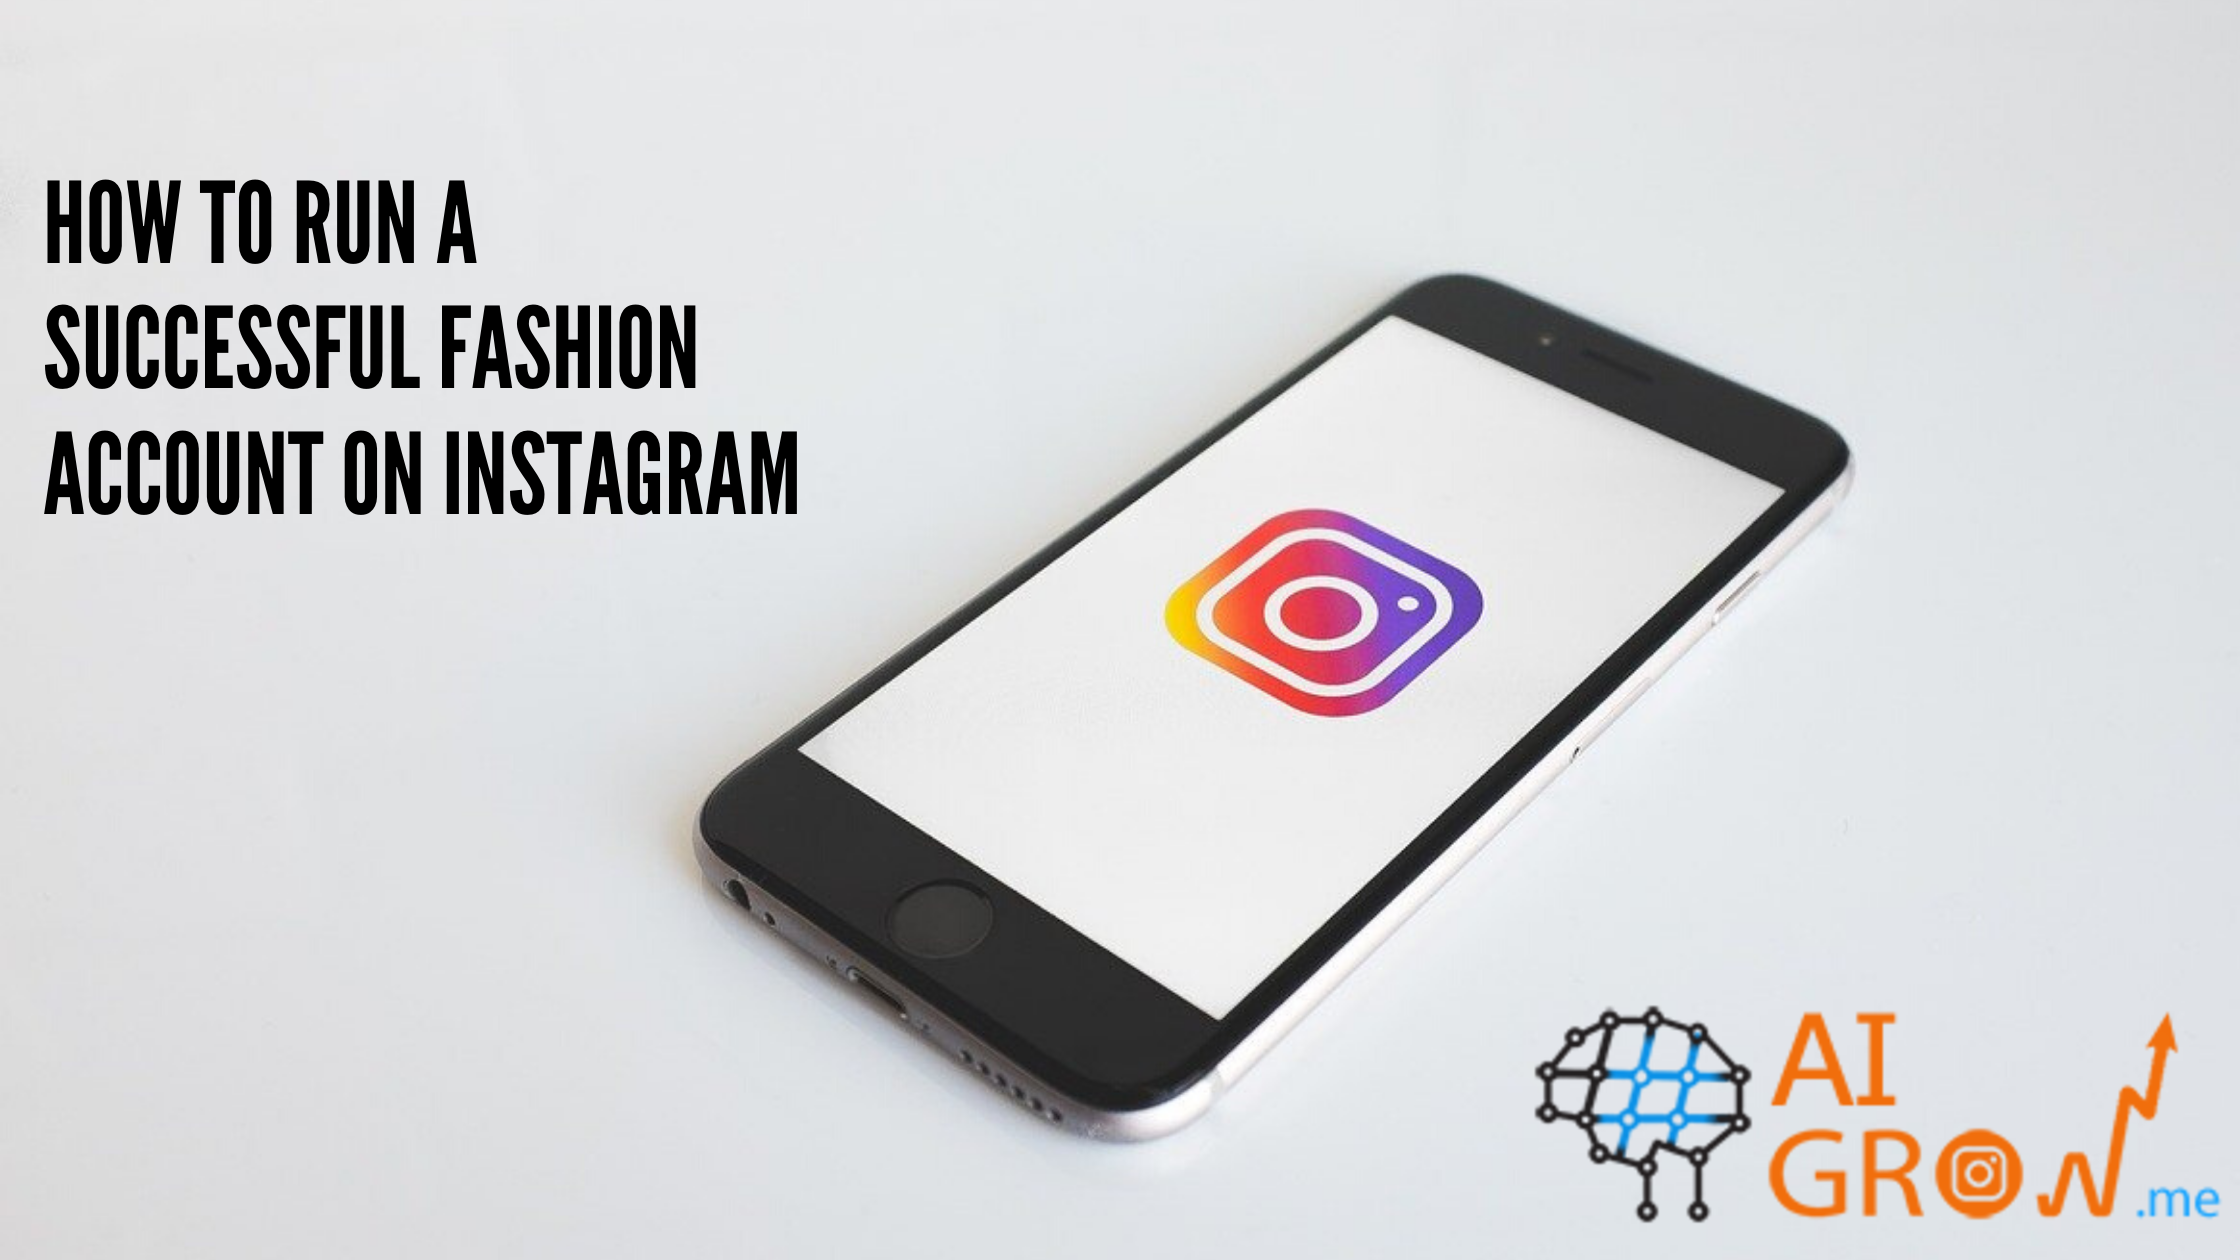 How to run a successful Instagram fashion account